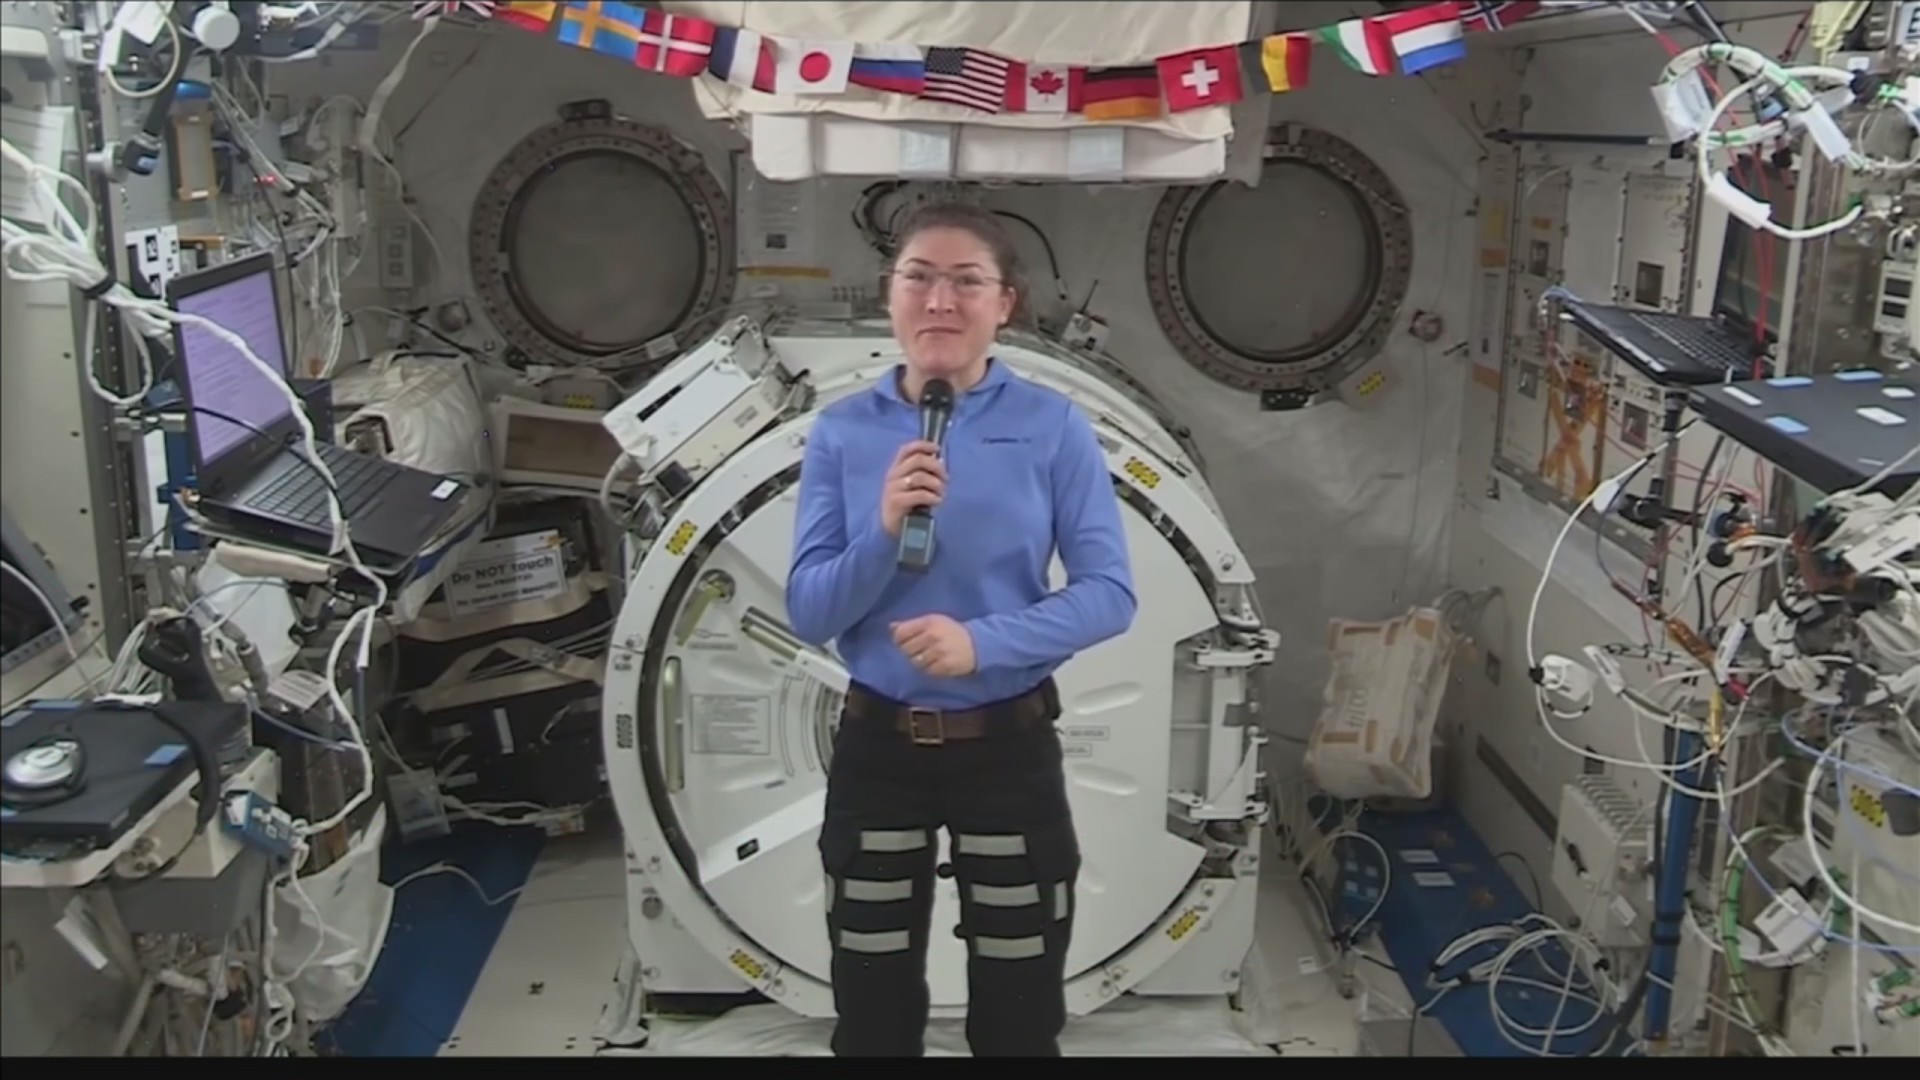 NASA_astronaut_sets_record_for_single_sp_9_20190418220123